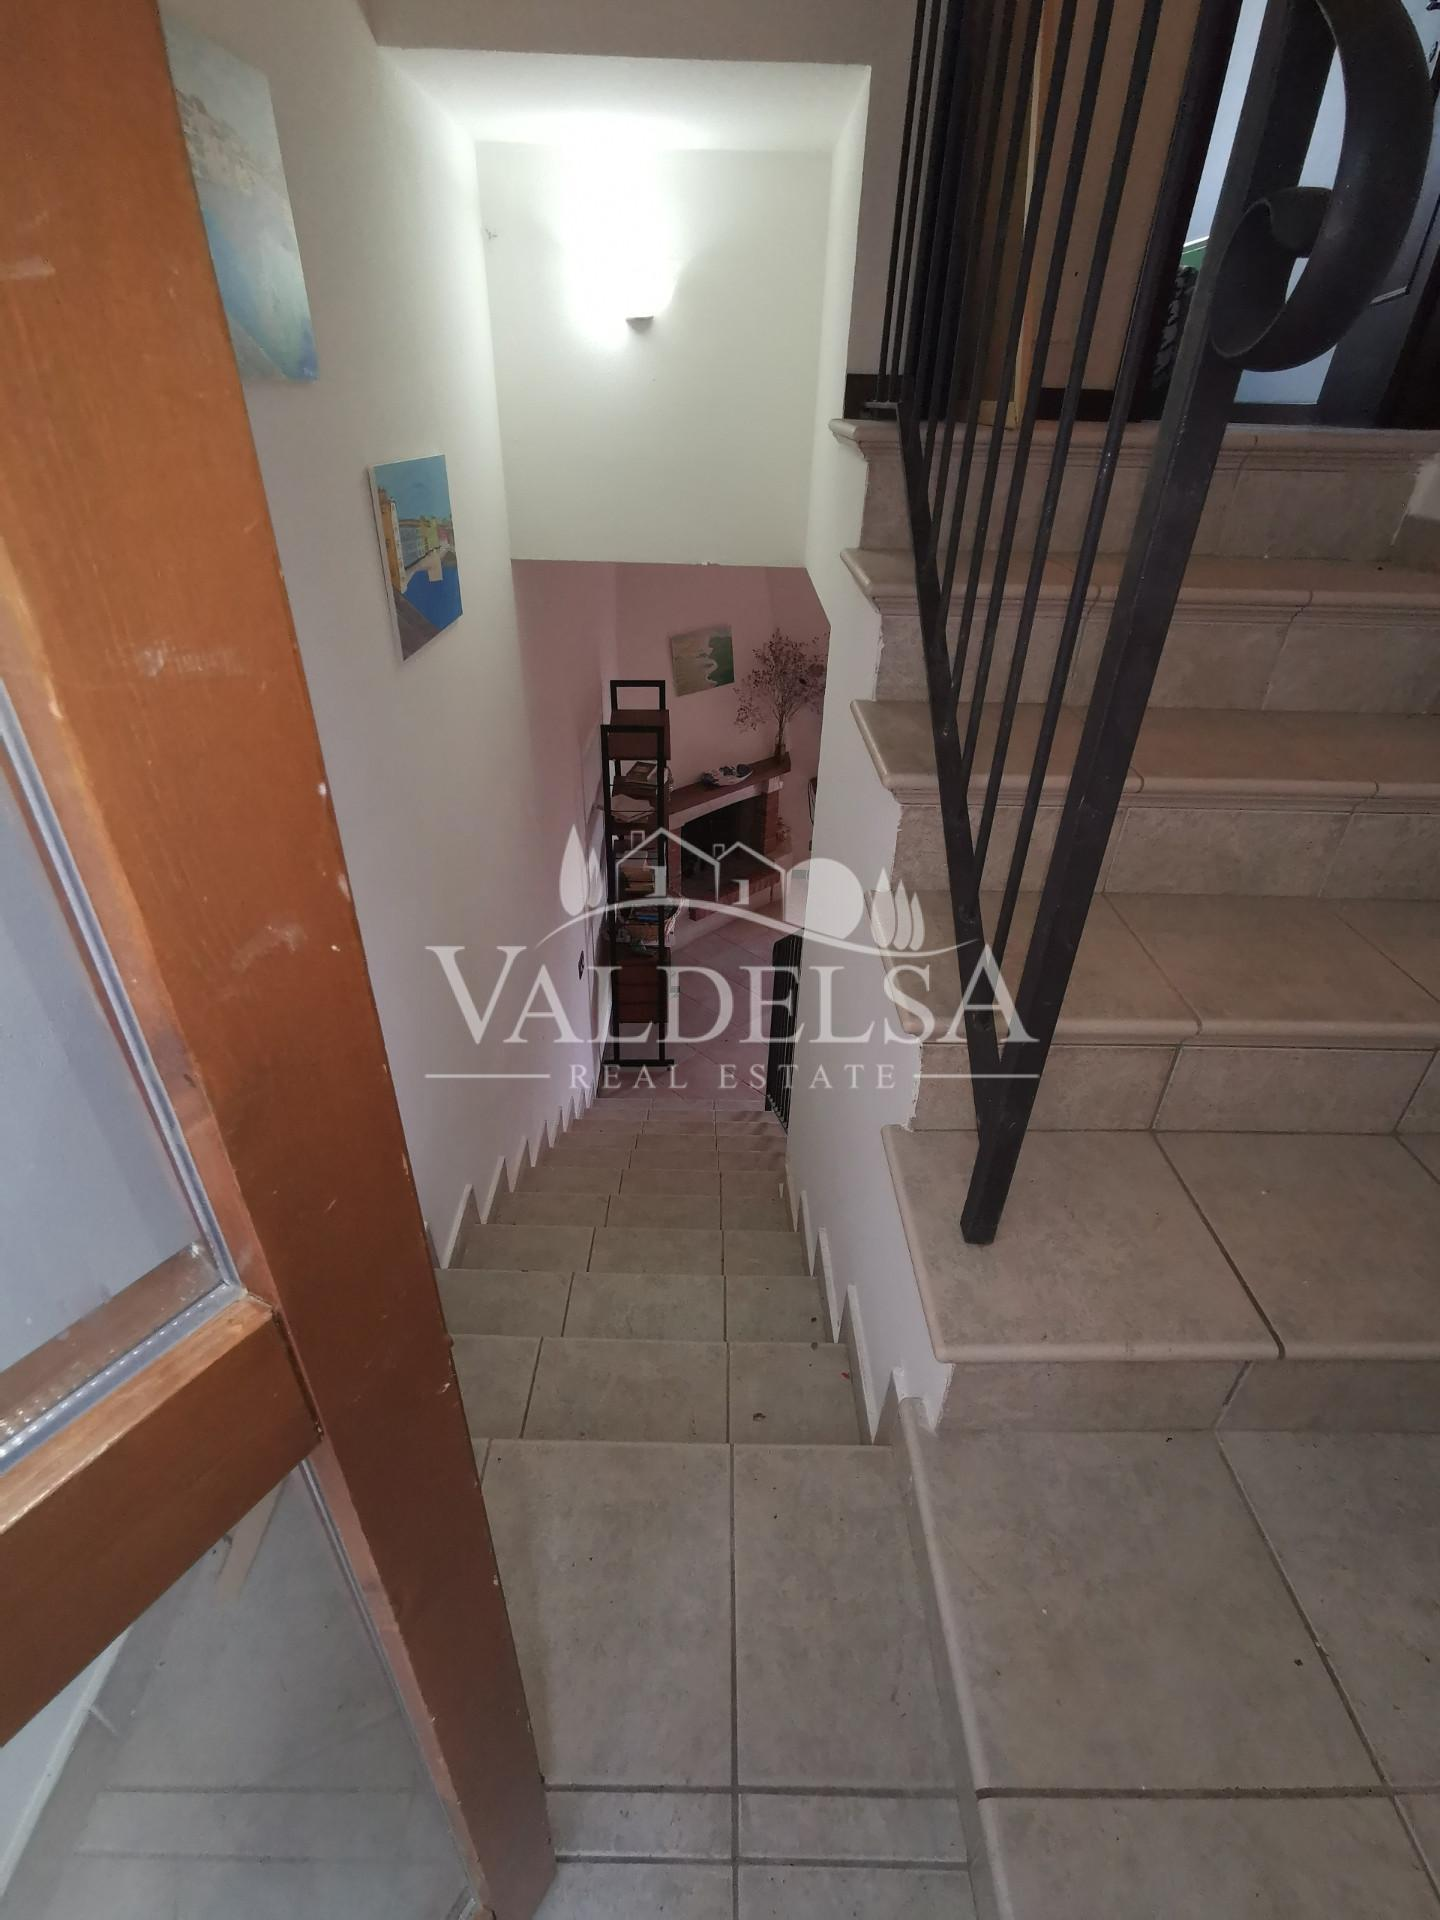 Townhouses for sale, ref. 567